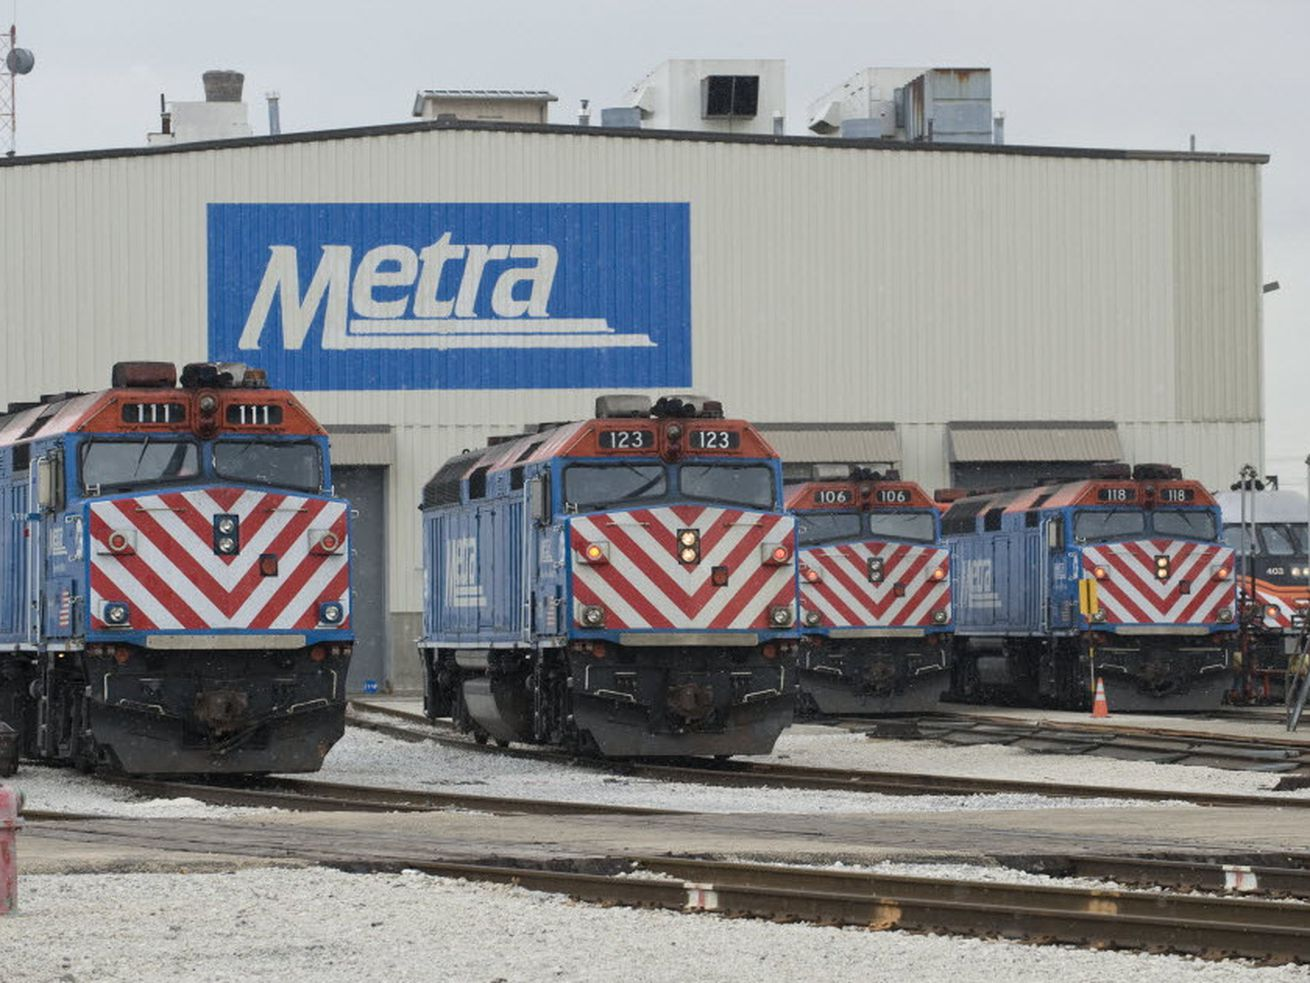 Metra trains parked outside a train barn.